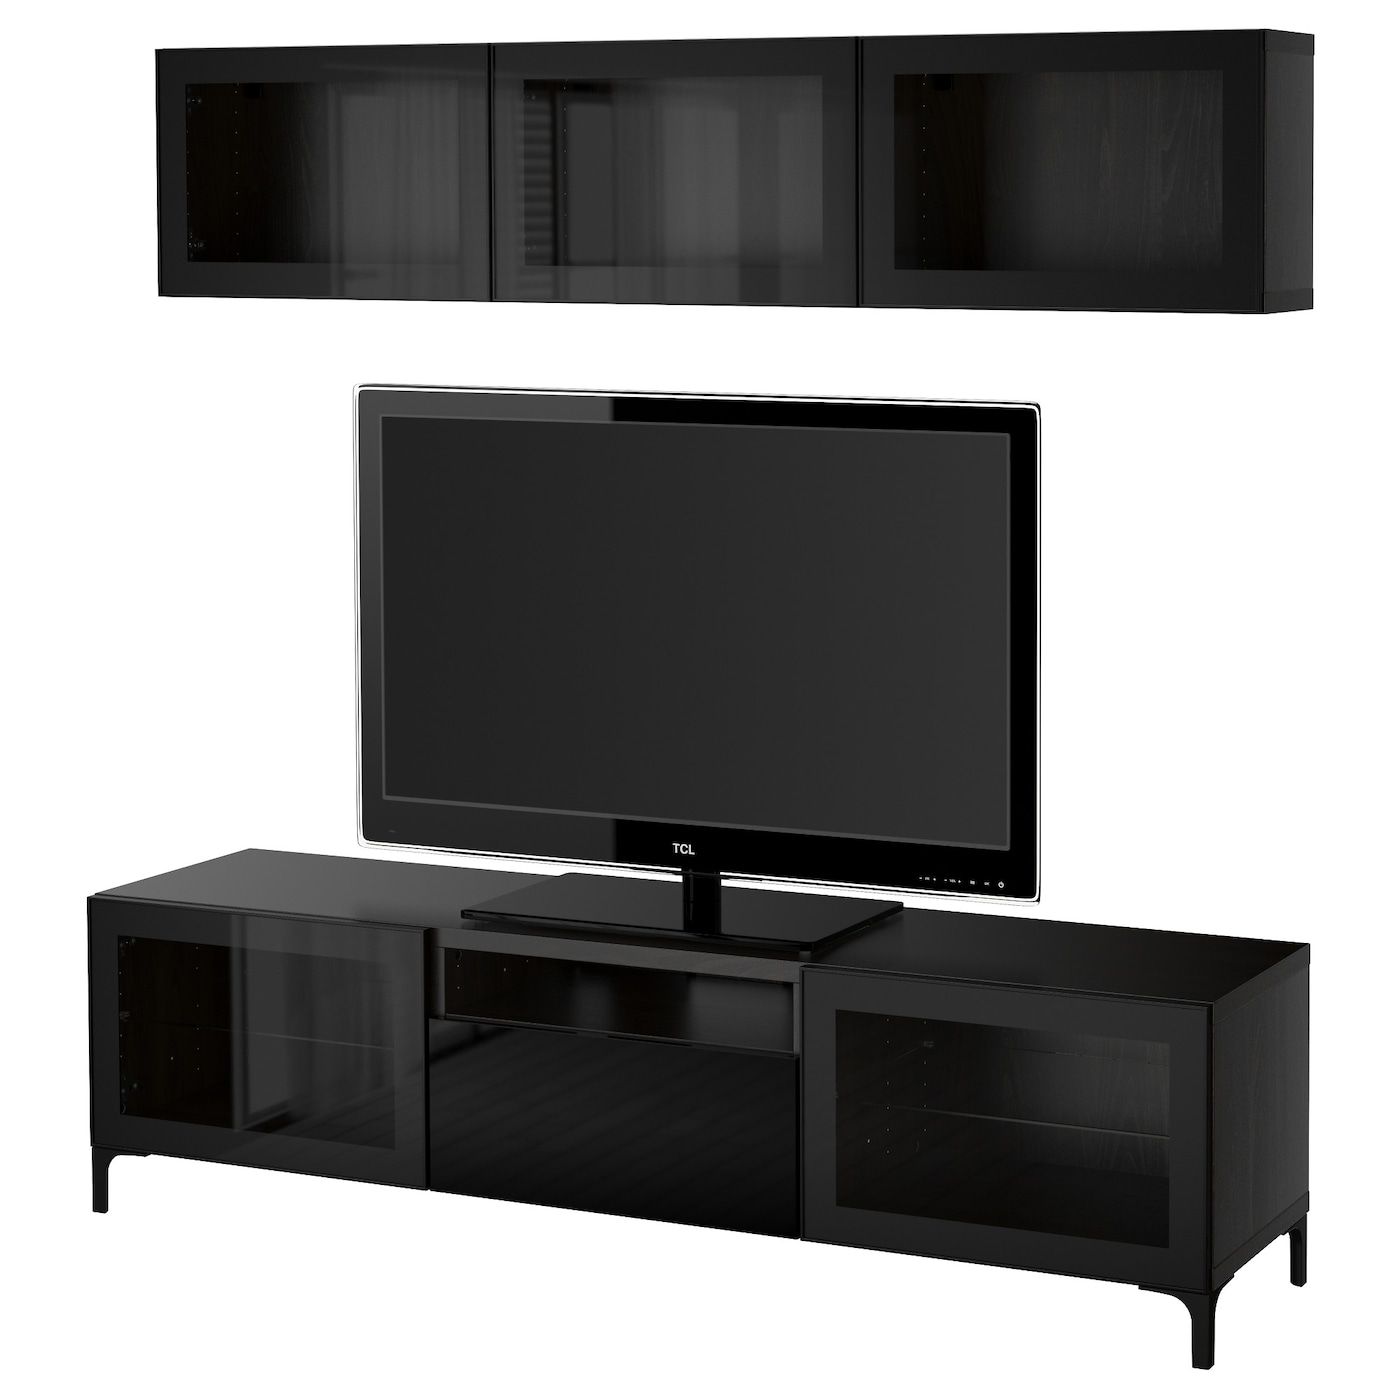 Best tv storage combination glass doors black brown for Le meuble furniture